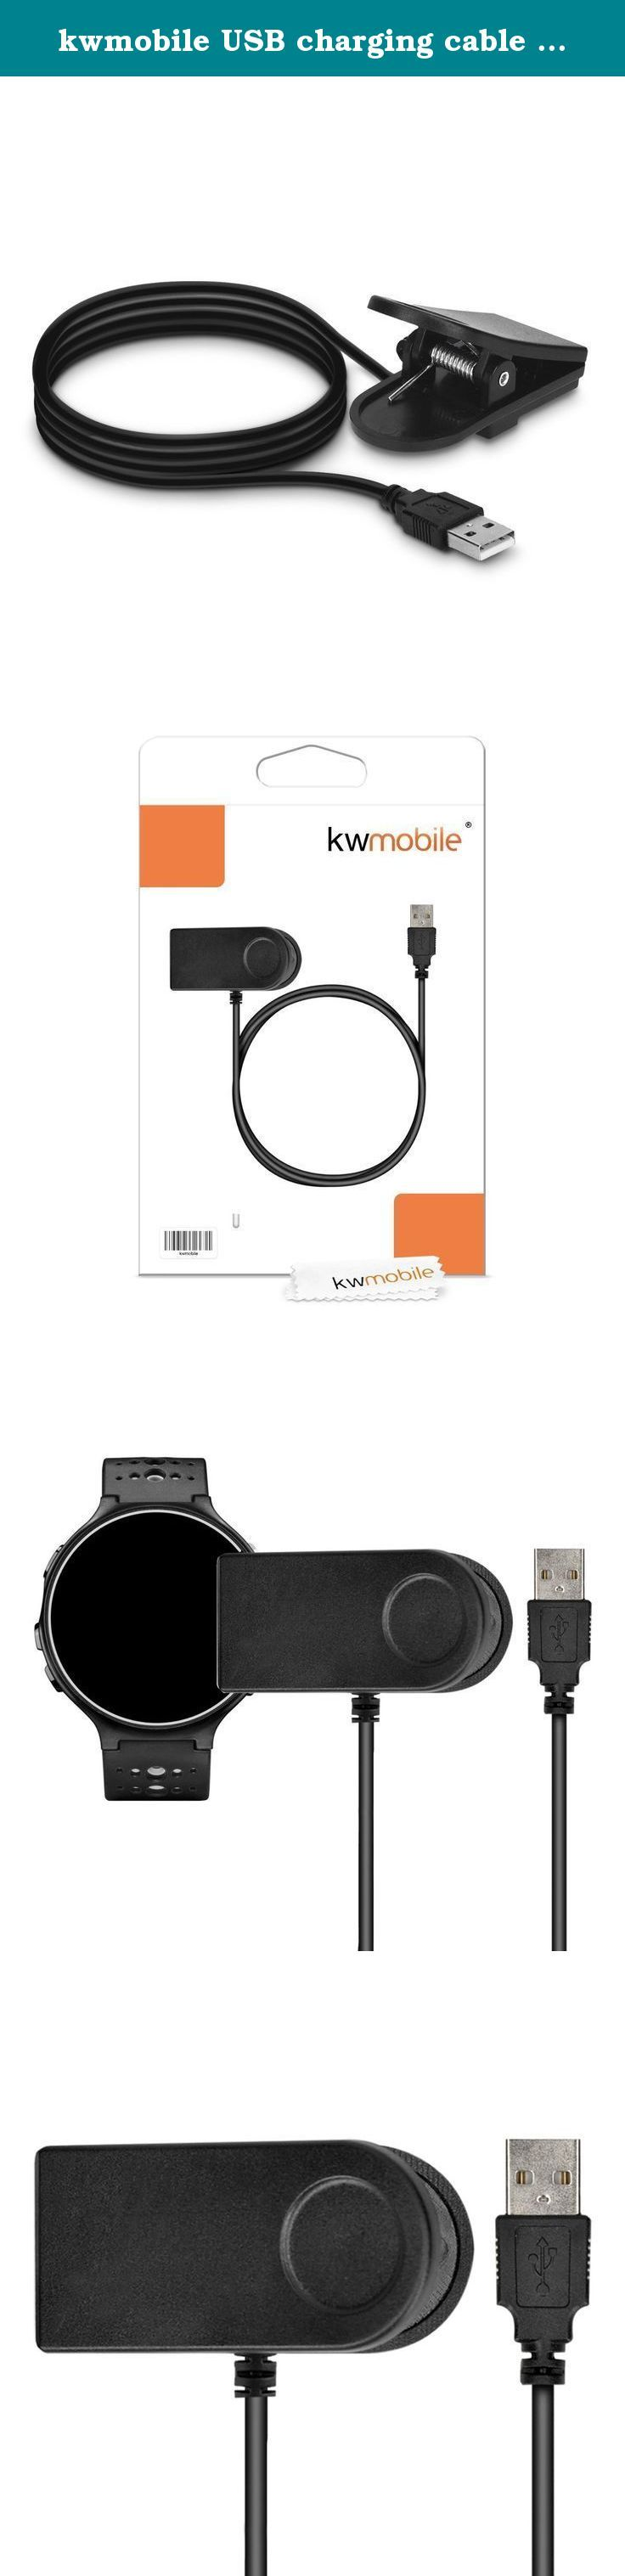 kwmobile USB charging cable for Garmin Forerunner 230 / 235 / 630 - replacement cable for sport armband in black. kwmobile offers its customers a huge range of accessories for mobile phones, tablets and laptops. From protective films and electronic accessories to gadgets; kwmobile supplies great products to satisfied customers already since 2012. Details THE CABLE TO GO: The kwmobile charging cable for your Garmin Forerunner 230 / 235 / 630 can be perfectly used as a replacement. It…